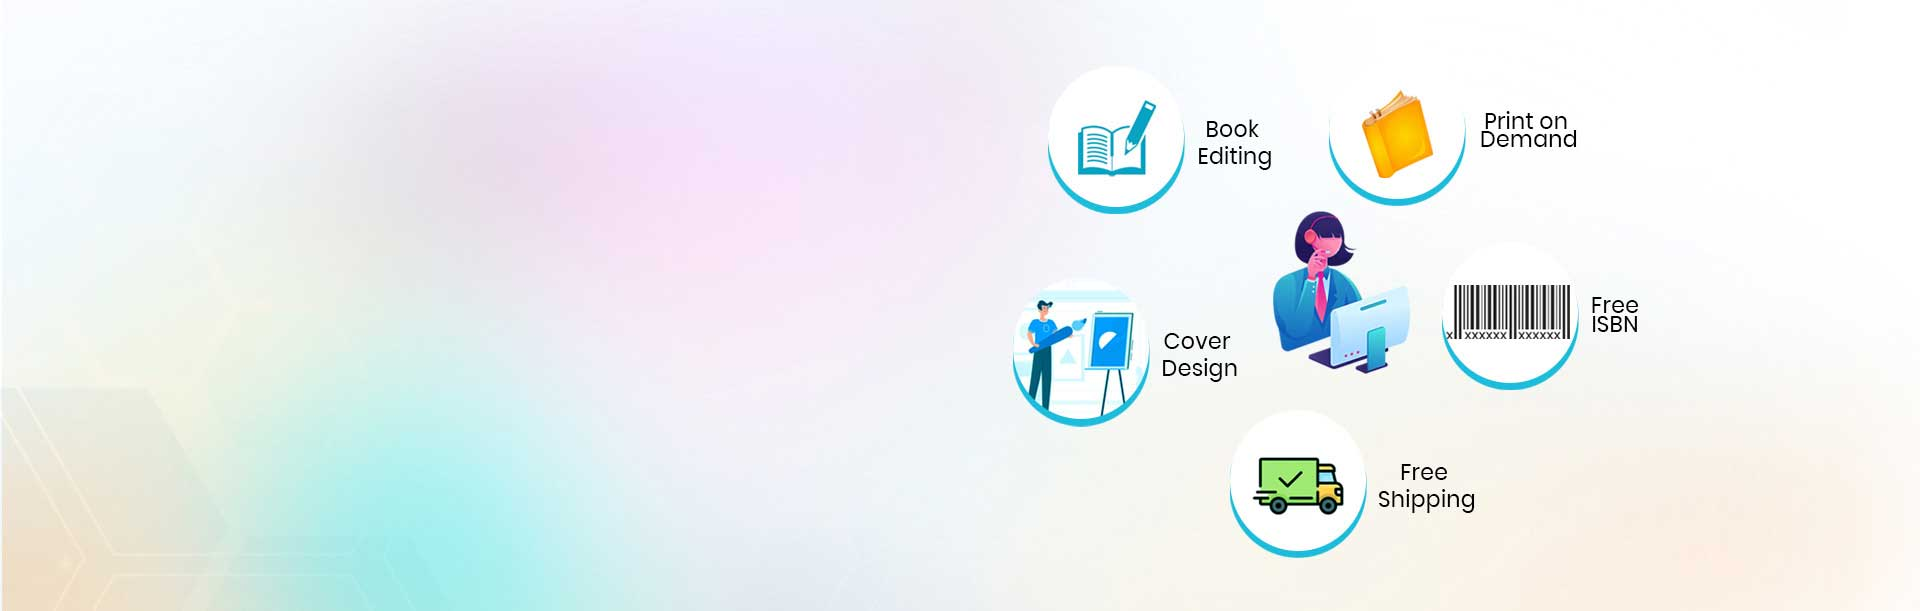 Self Book Publishing in India